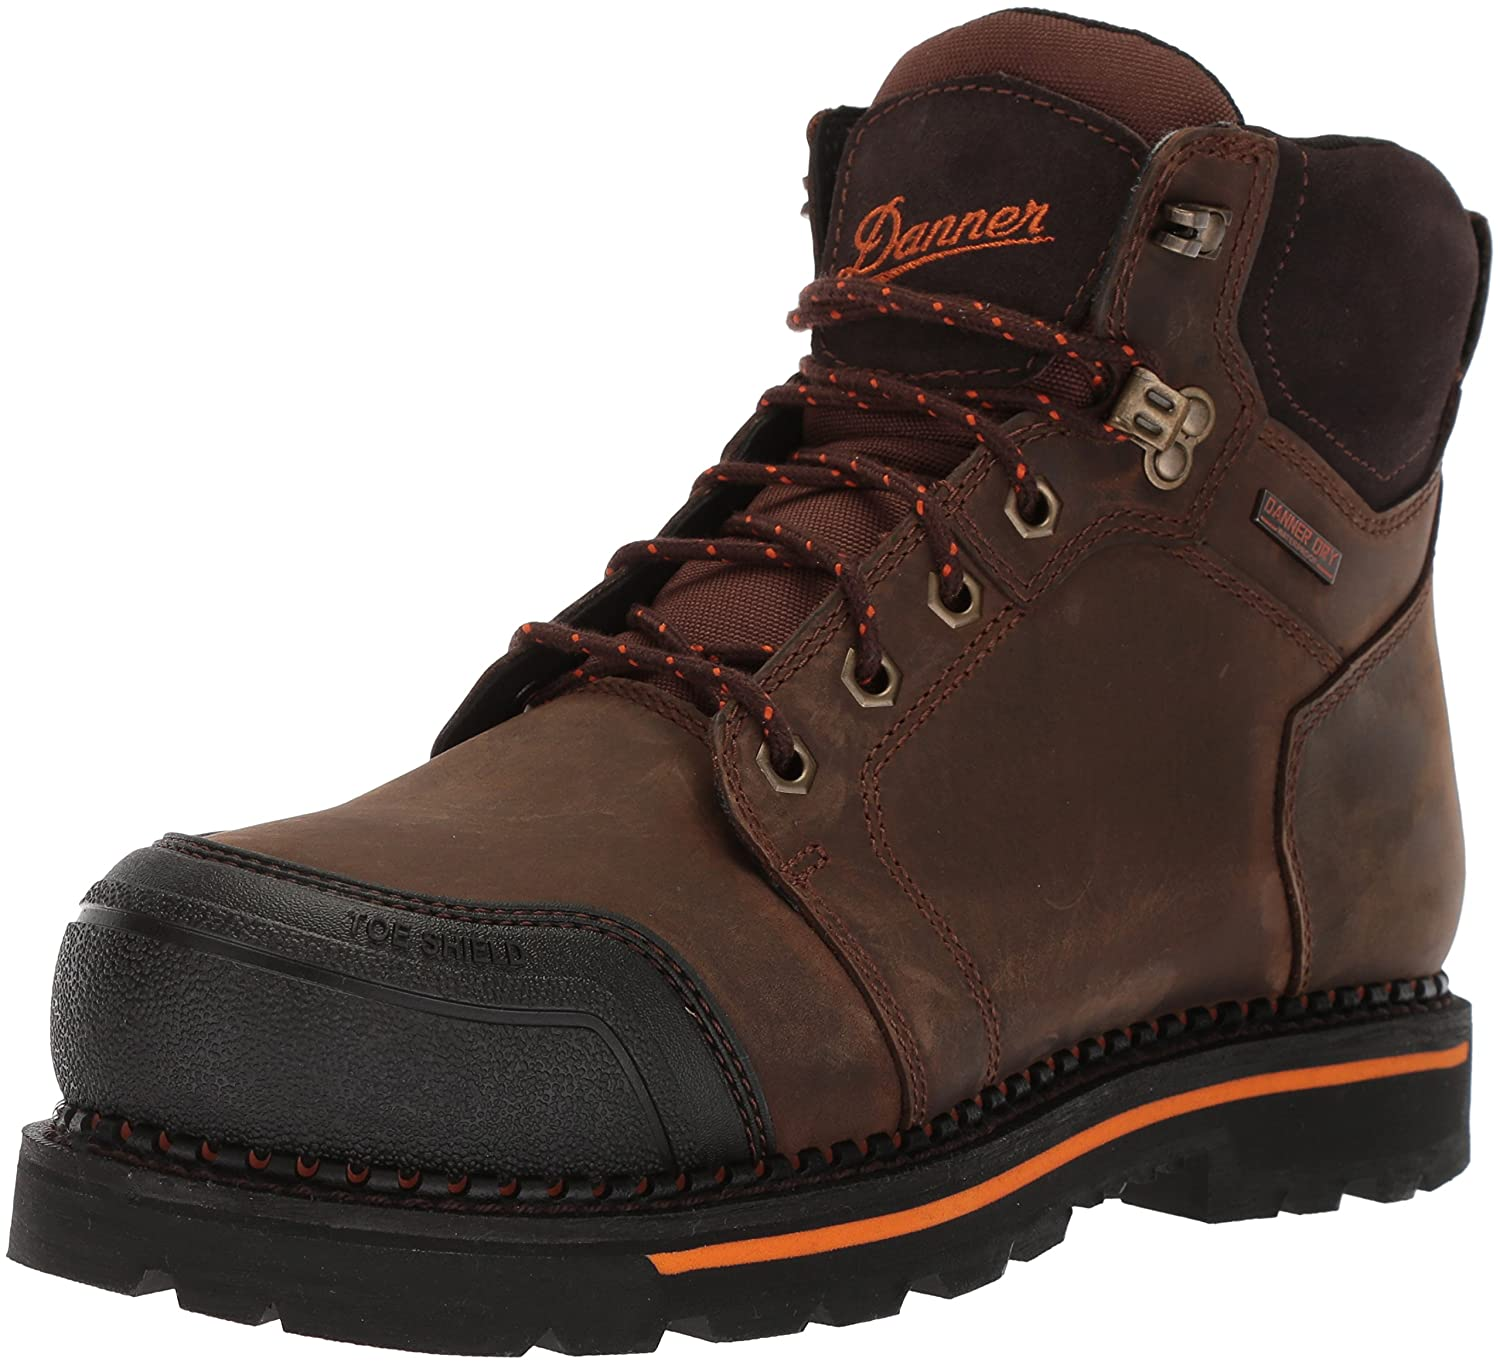 Danner メンズ 13247 B074KKBLT5 9.5 2E US|Brown Nmt Brown Nmt 9.5 2E US